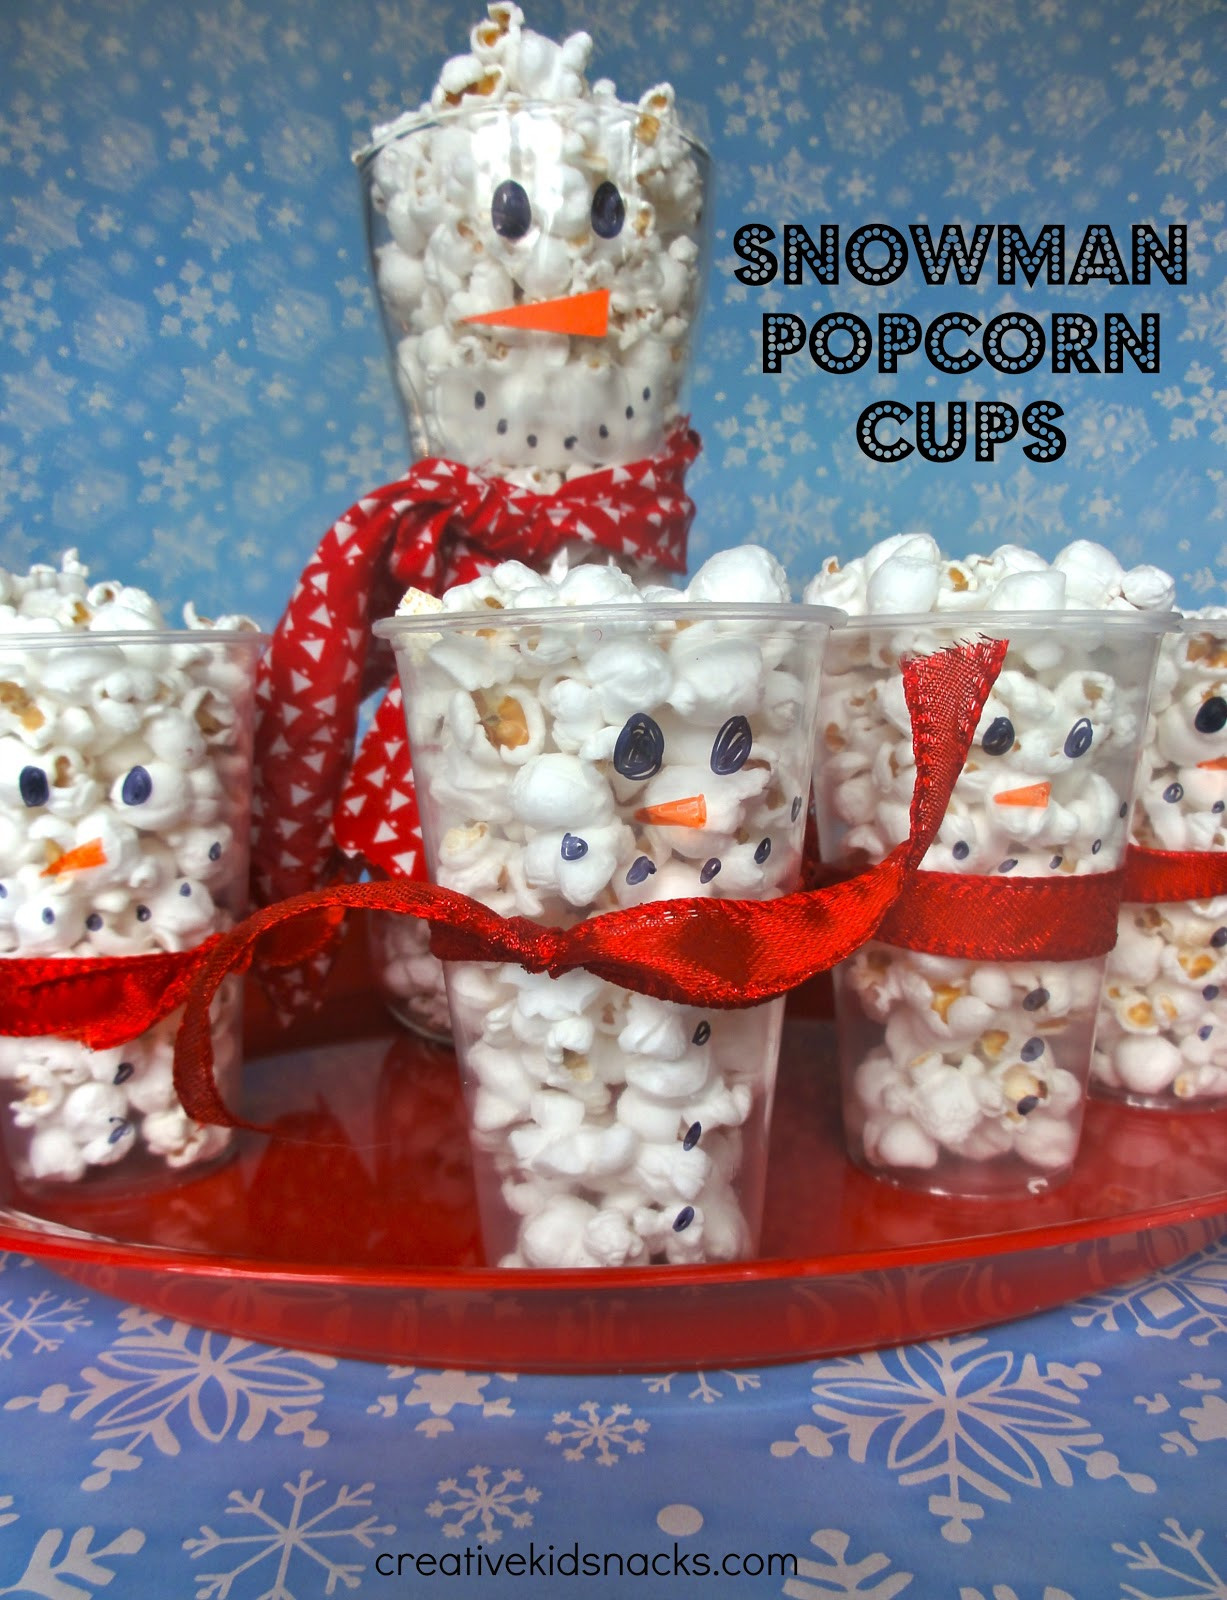 School Christmas Party Ideas  Creative Kid Snacks